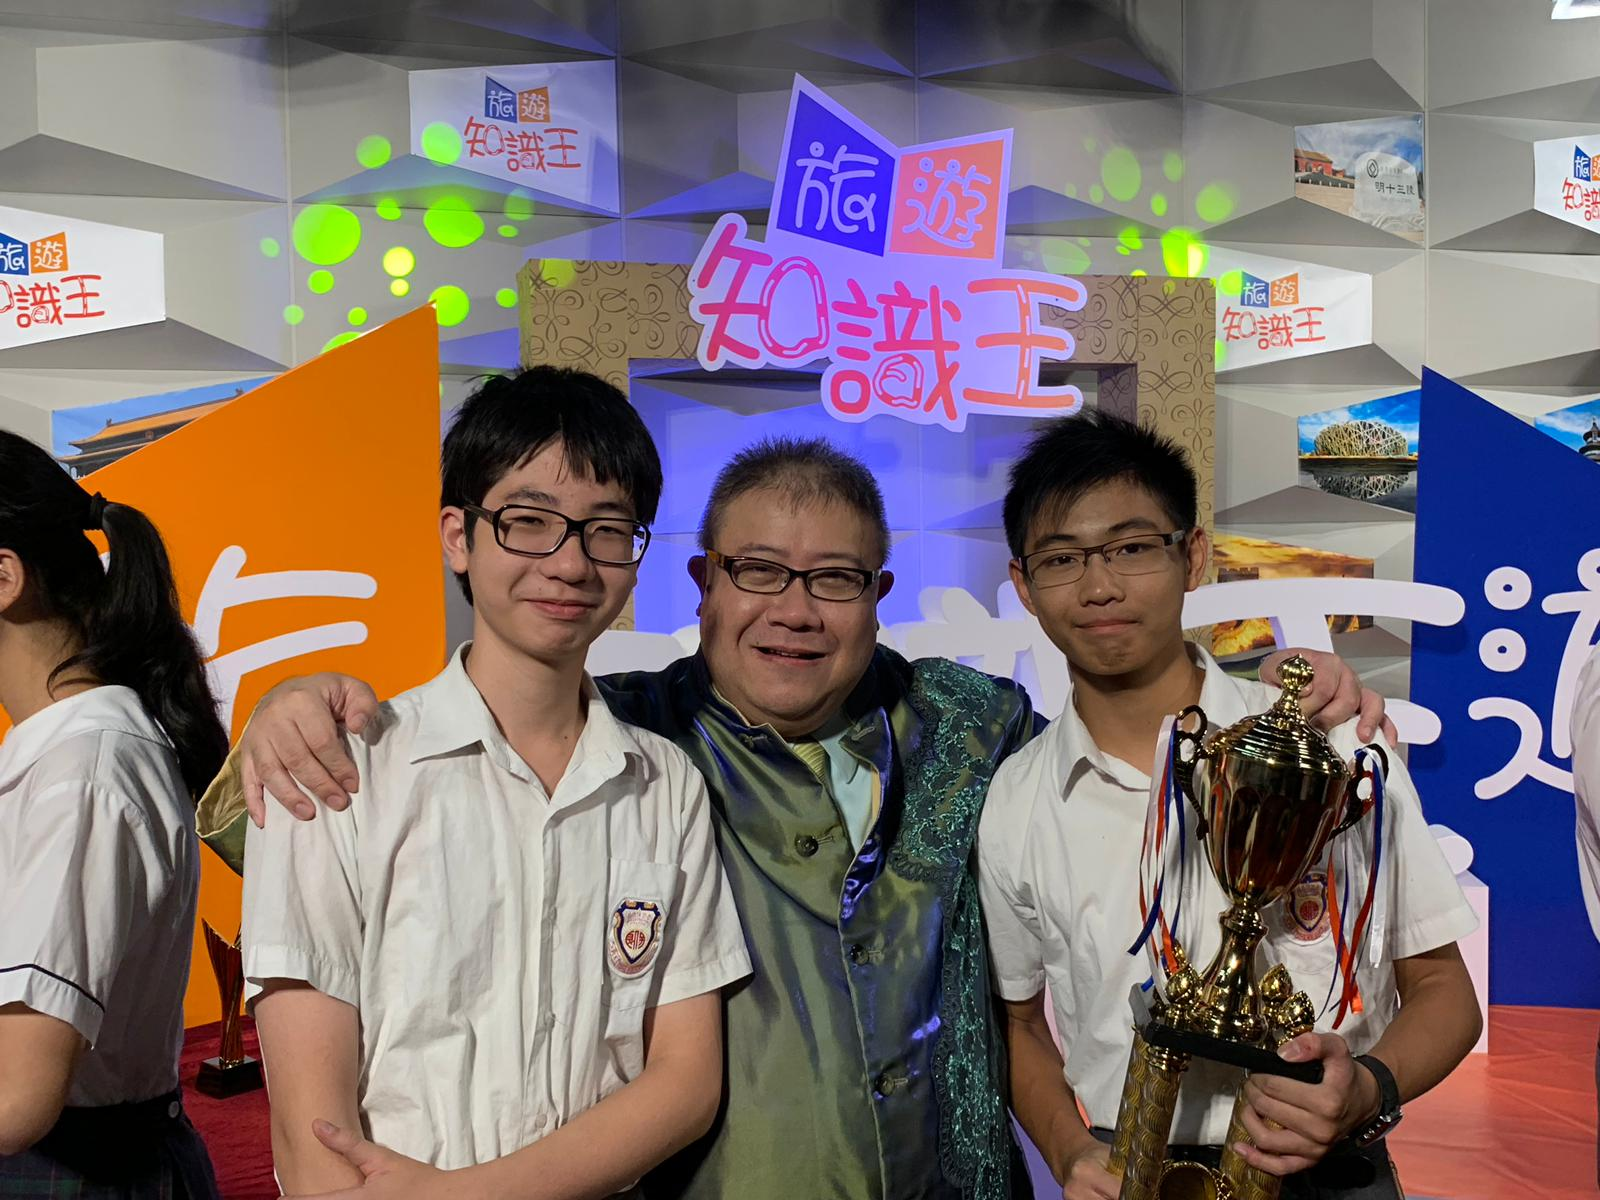 Students are congratulated by the host, famous actor, Mr. Lau Shek-yin, on getting the 2nd Prize in the competition.